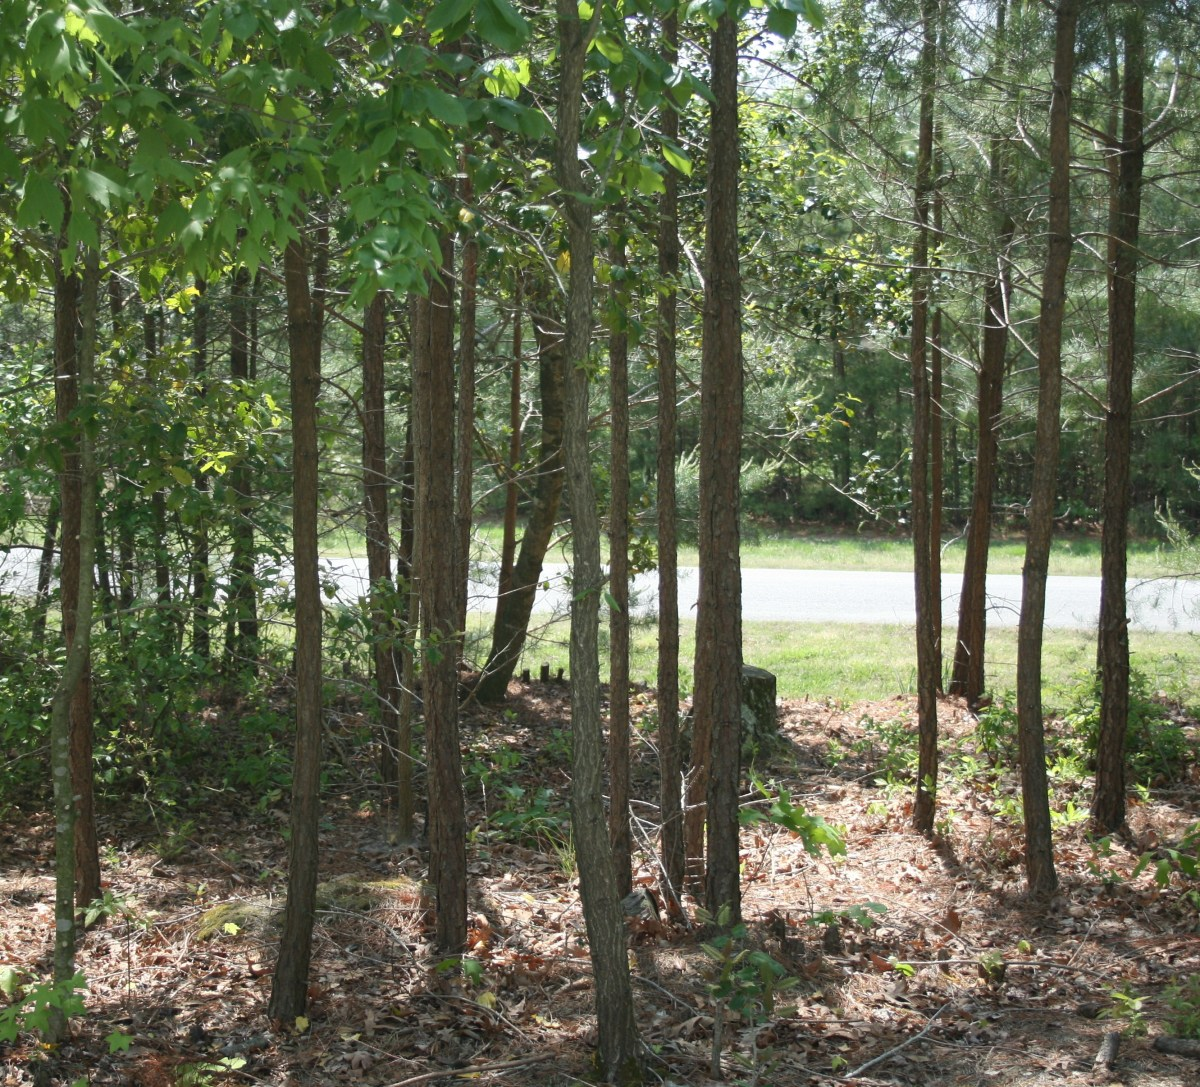 Clearing brush and thinning wooded areas near your house will help keep tick populations down.